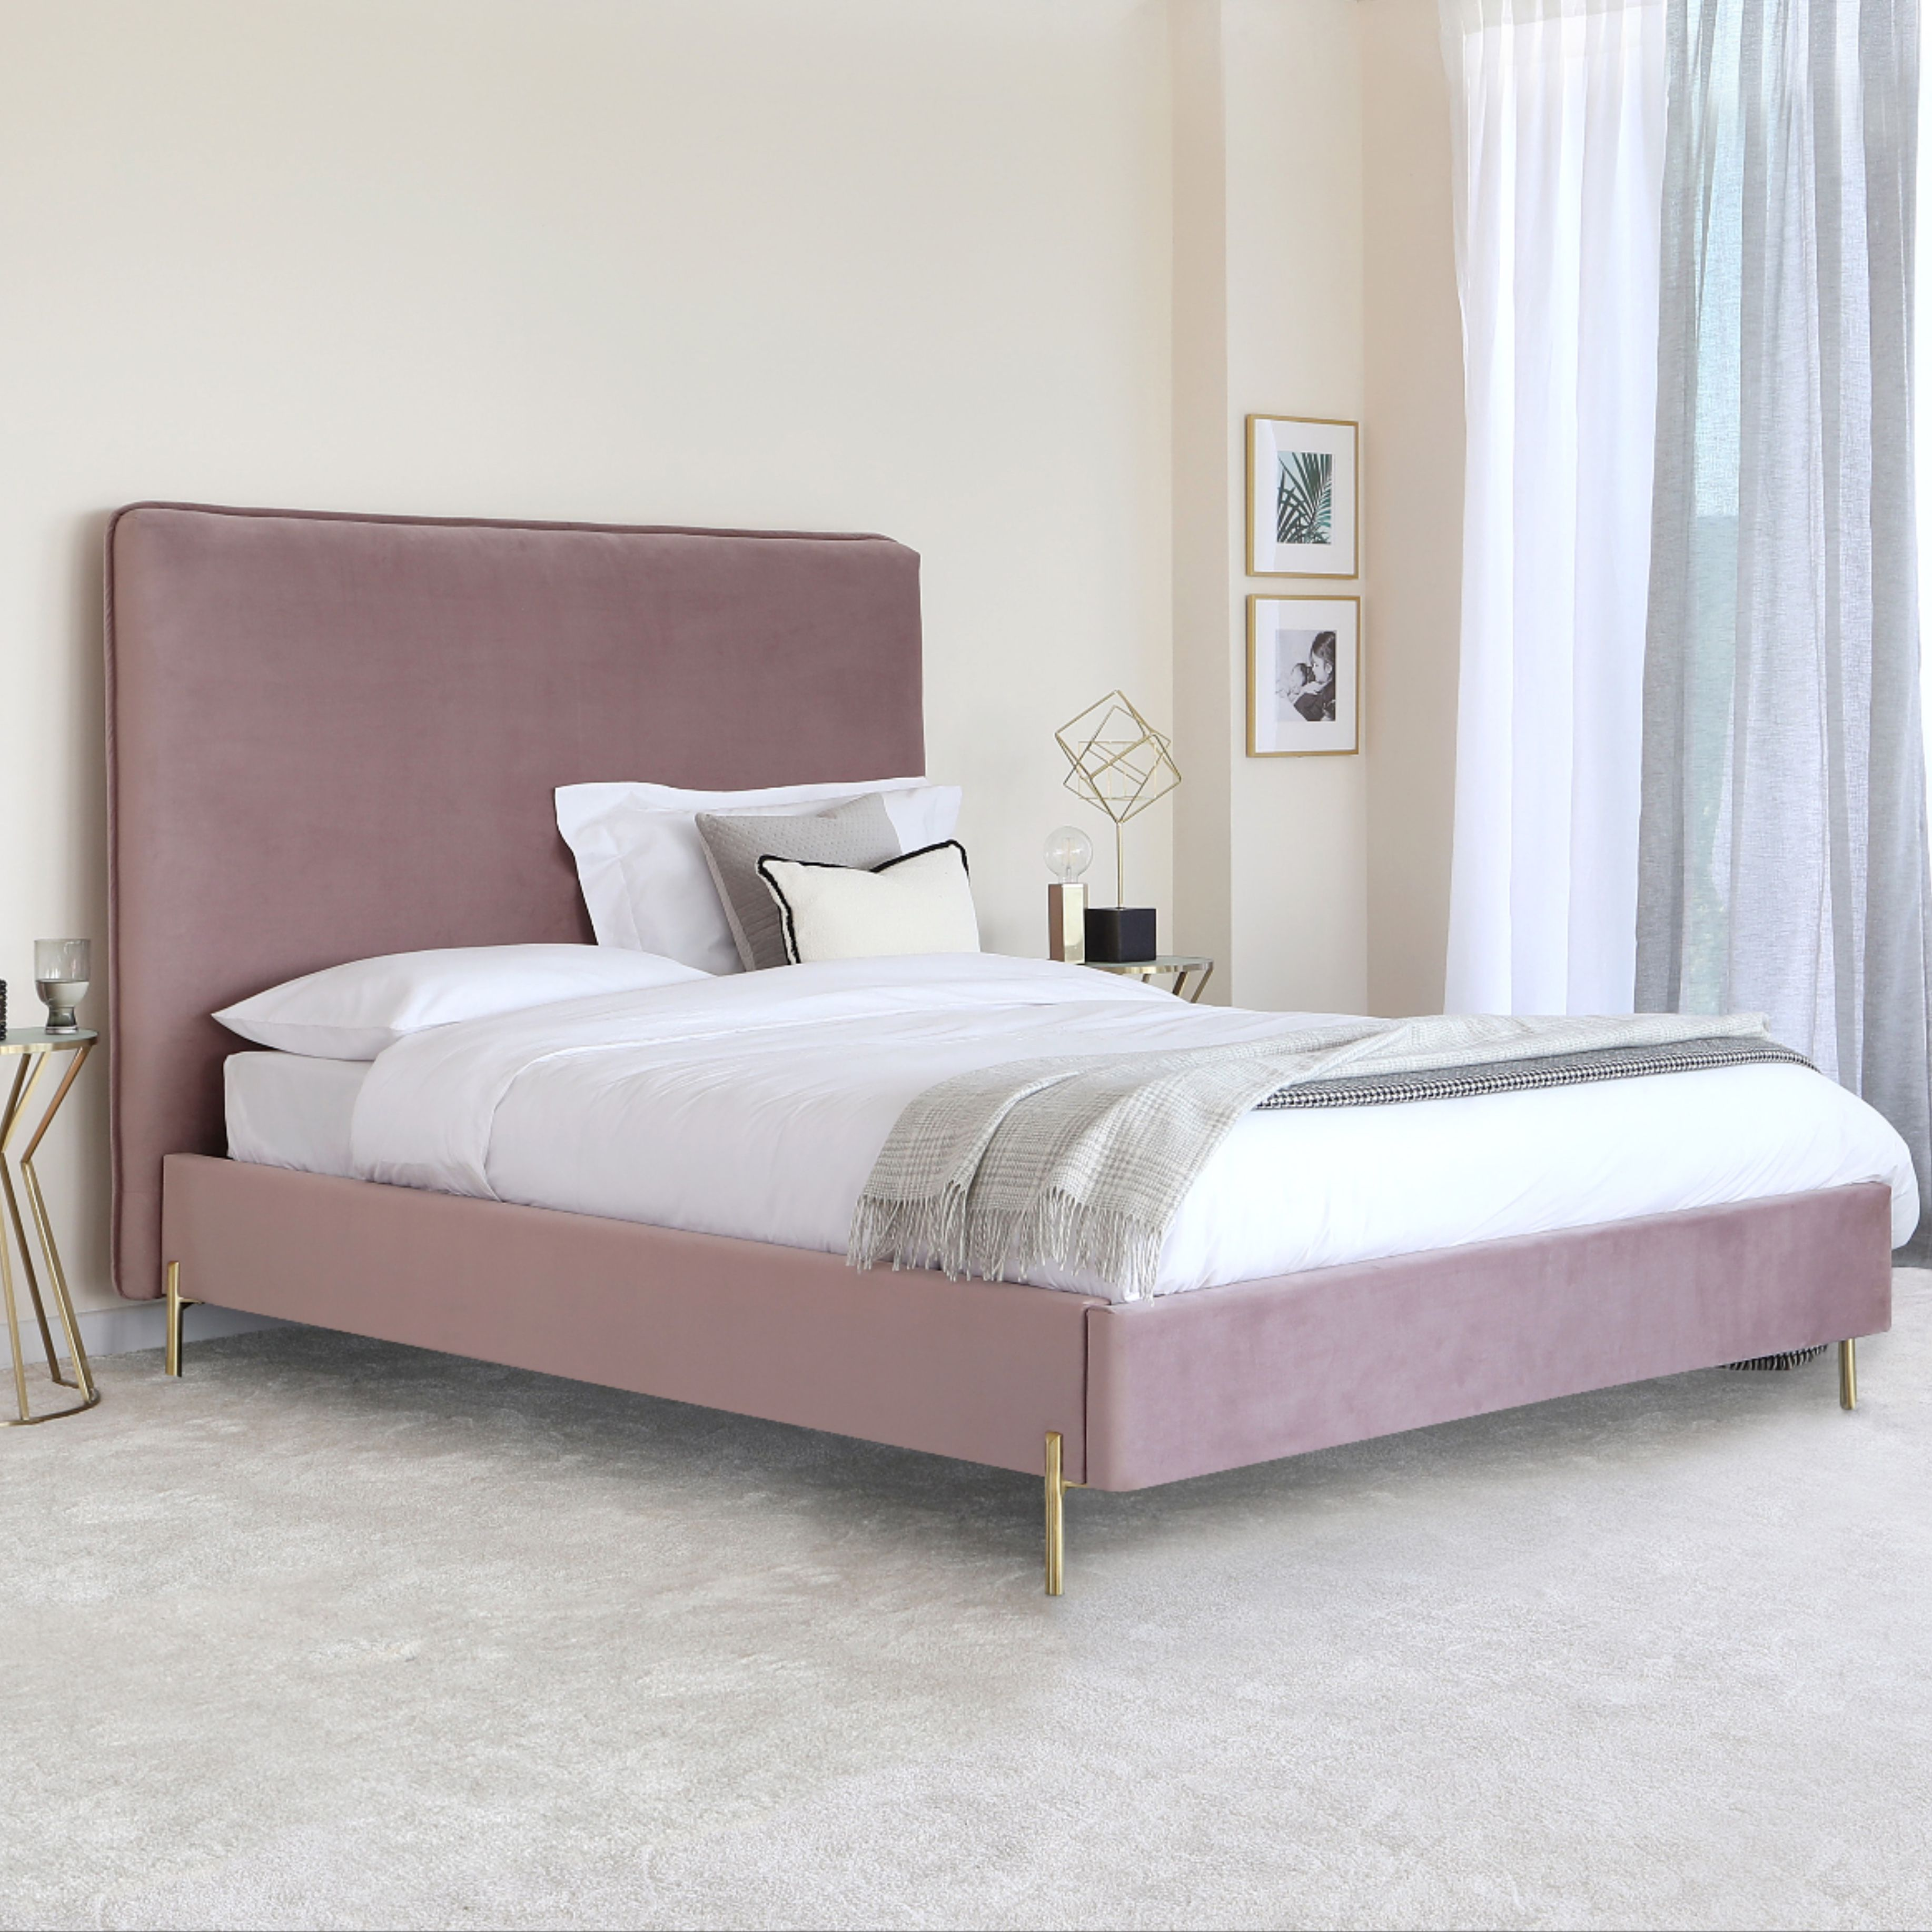 £439 The Darcy Blush Pink Velvet King Size Bed is a